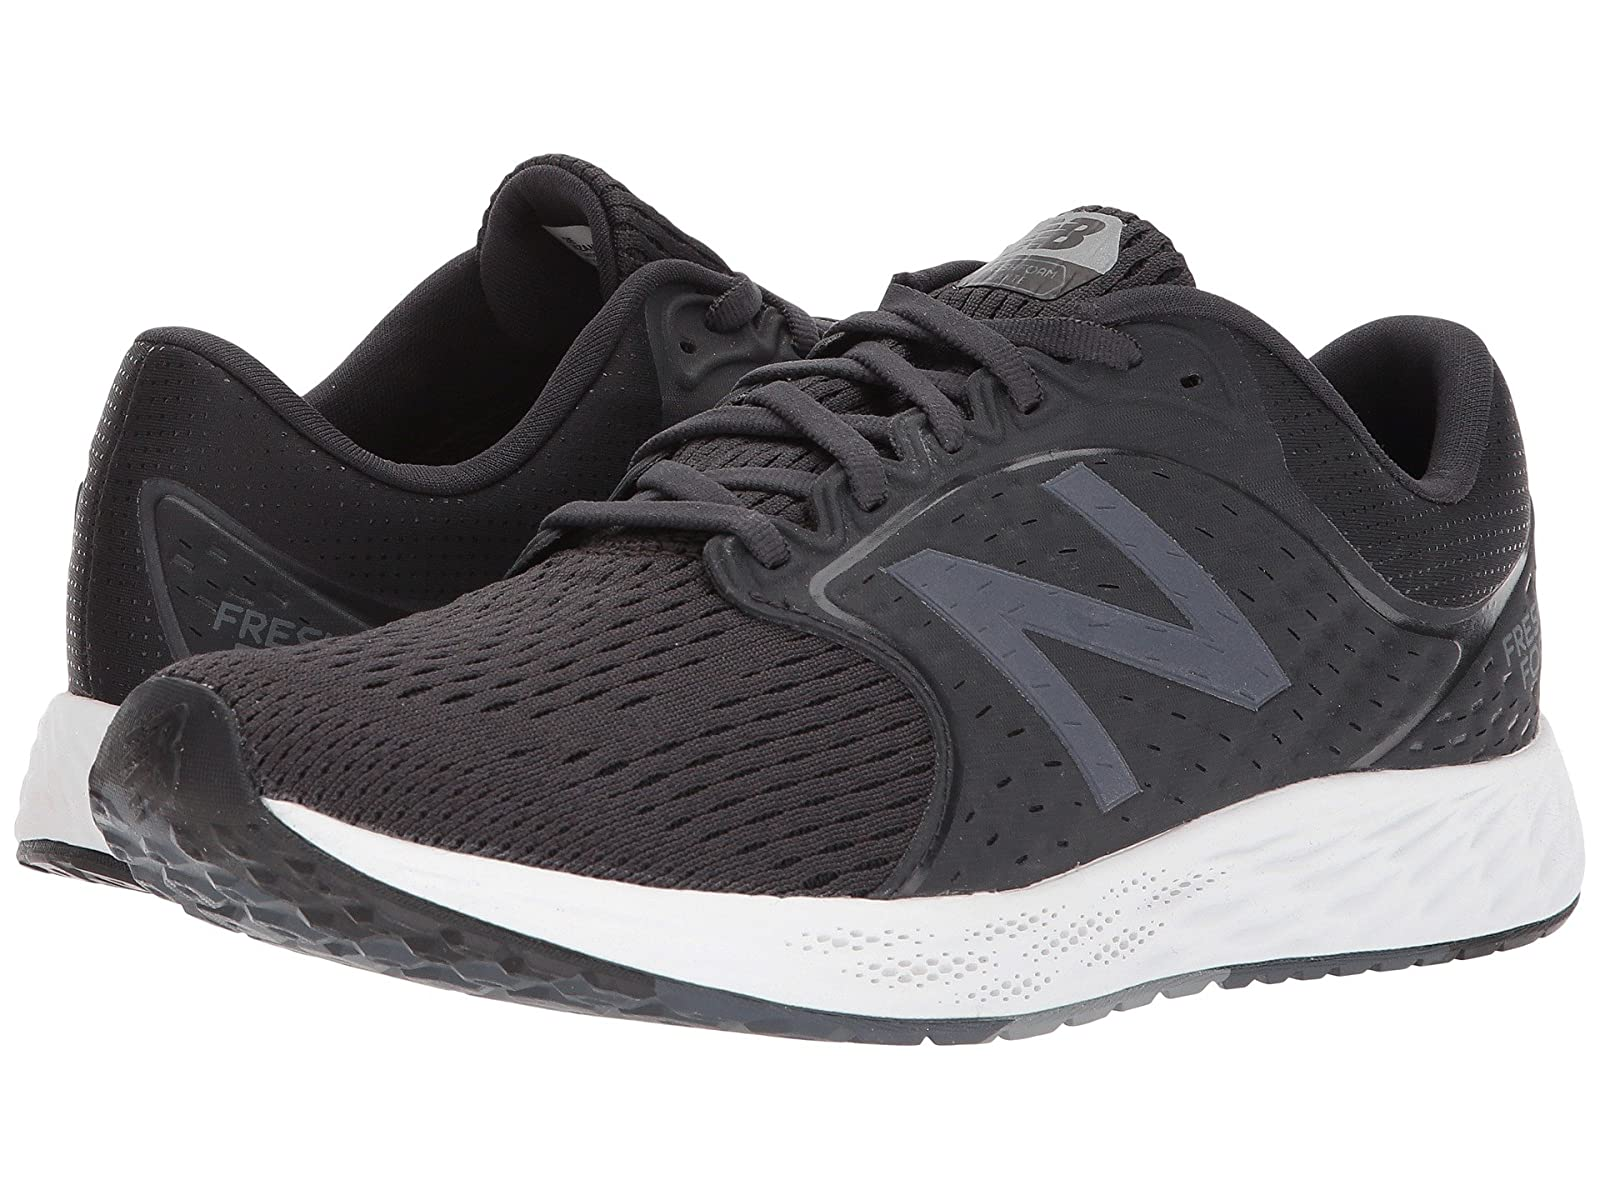 New Balance Fresh Foam Zante v4Atmospheric grades have affordable shoes